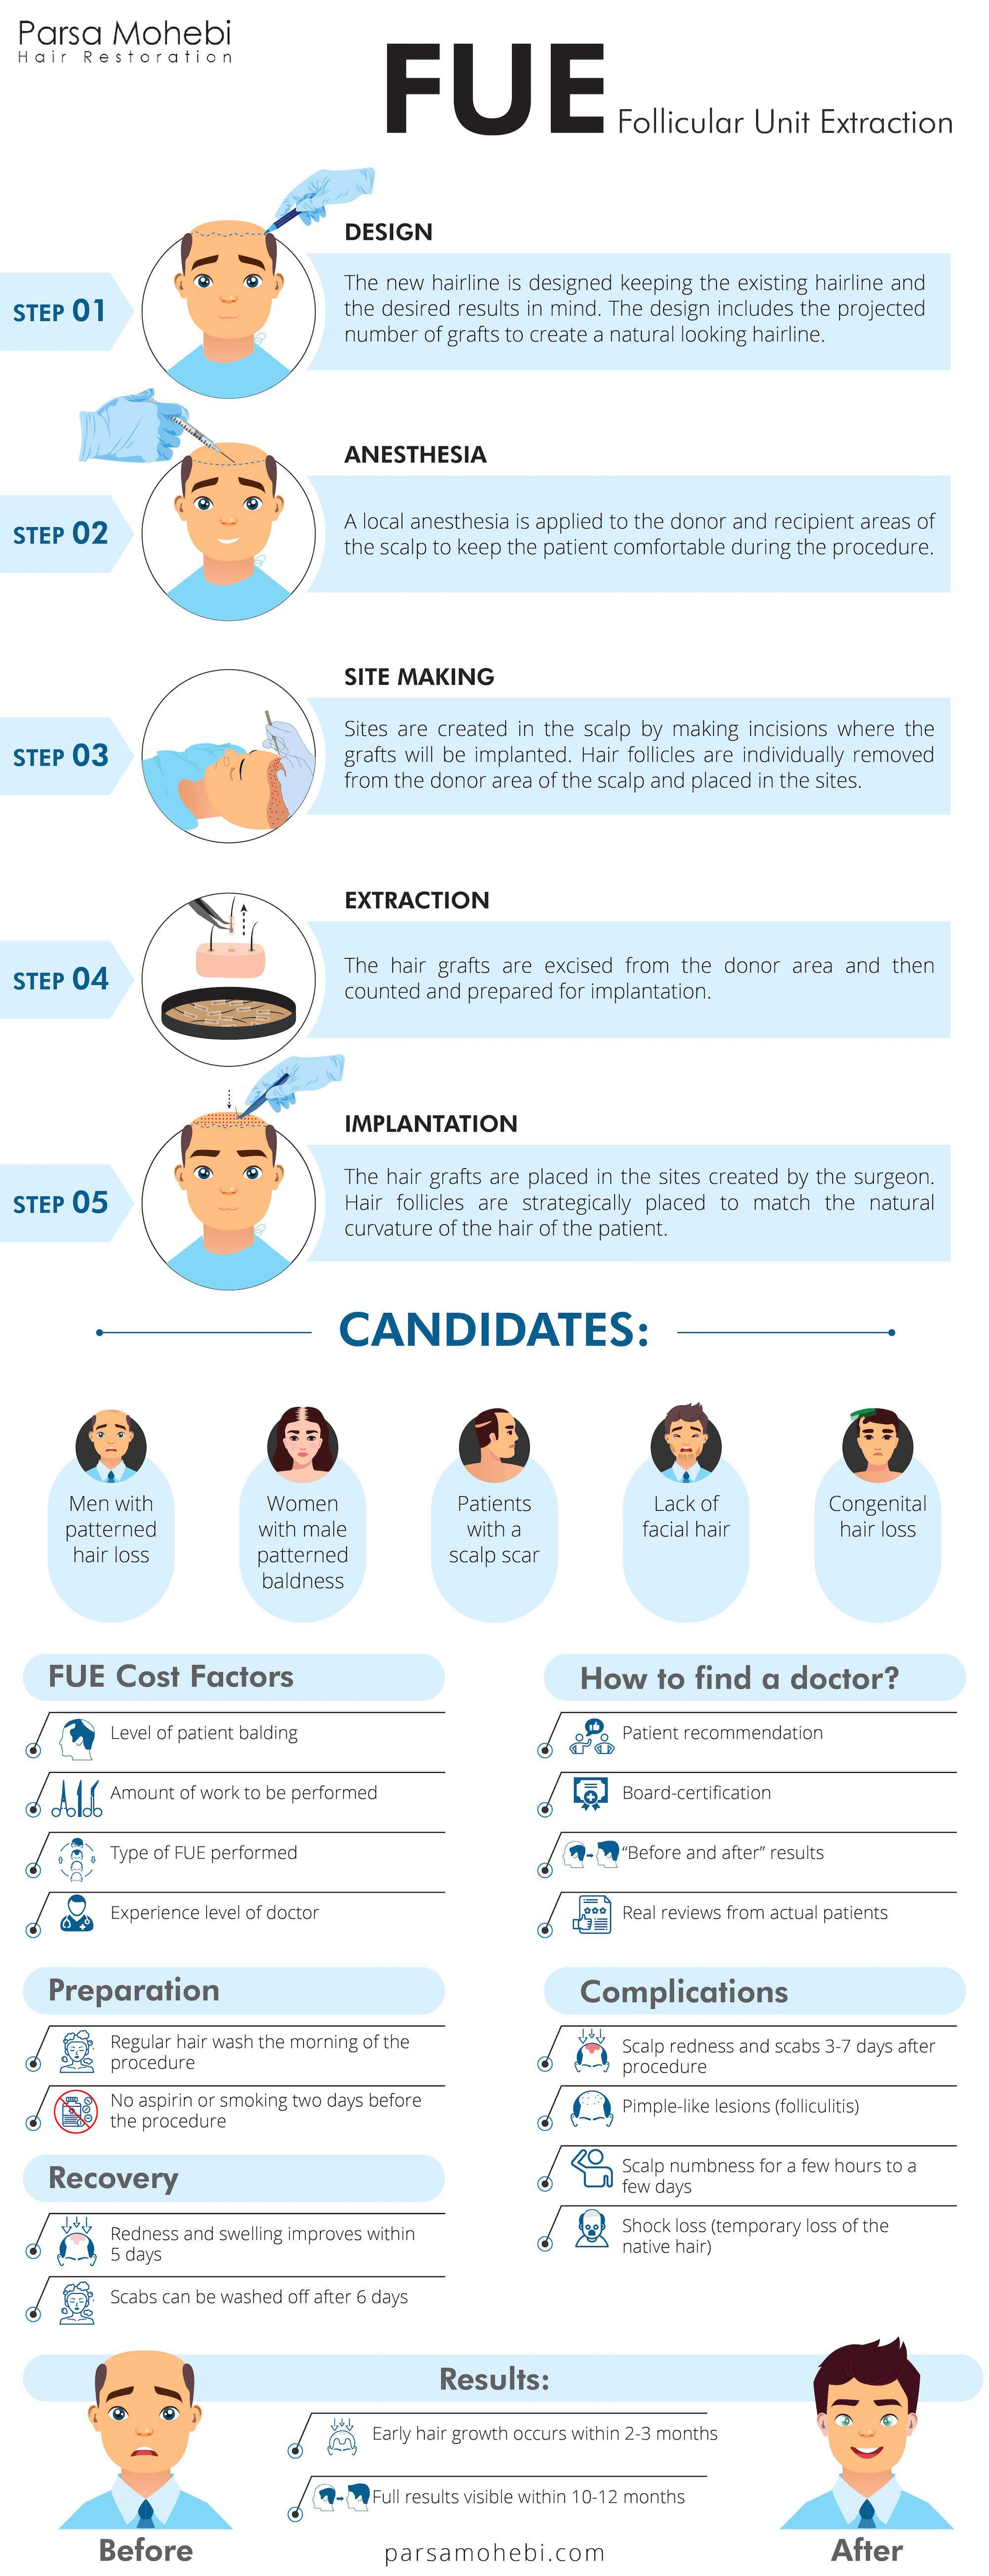 FUE hair transplant explained in infographic